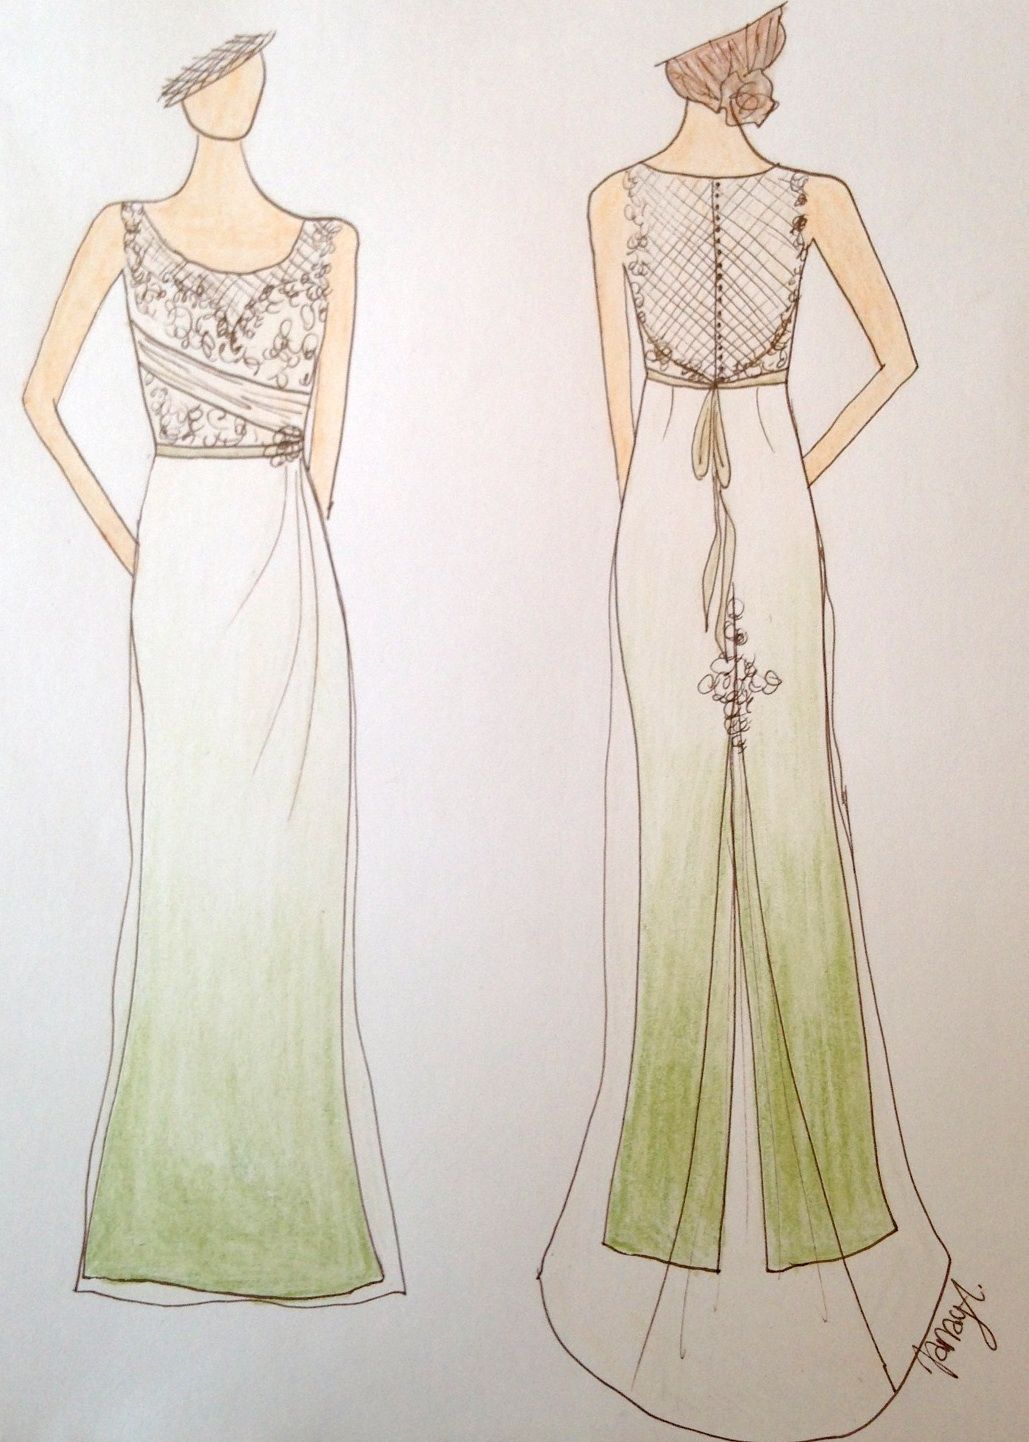 Buy Custom Made Pale Green Ombre Wedding Dress, made to order from ...